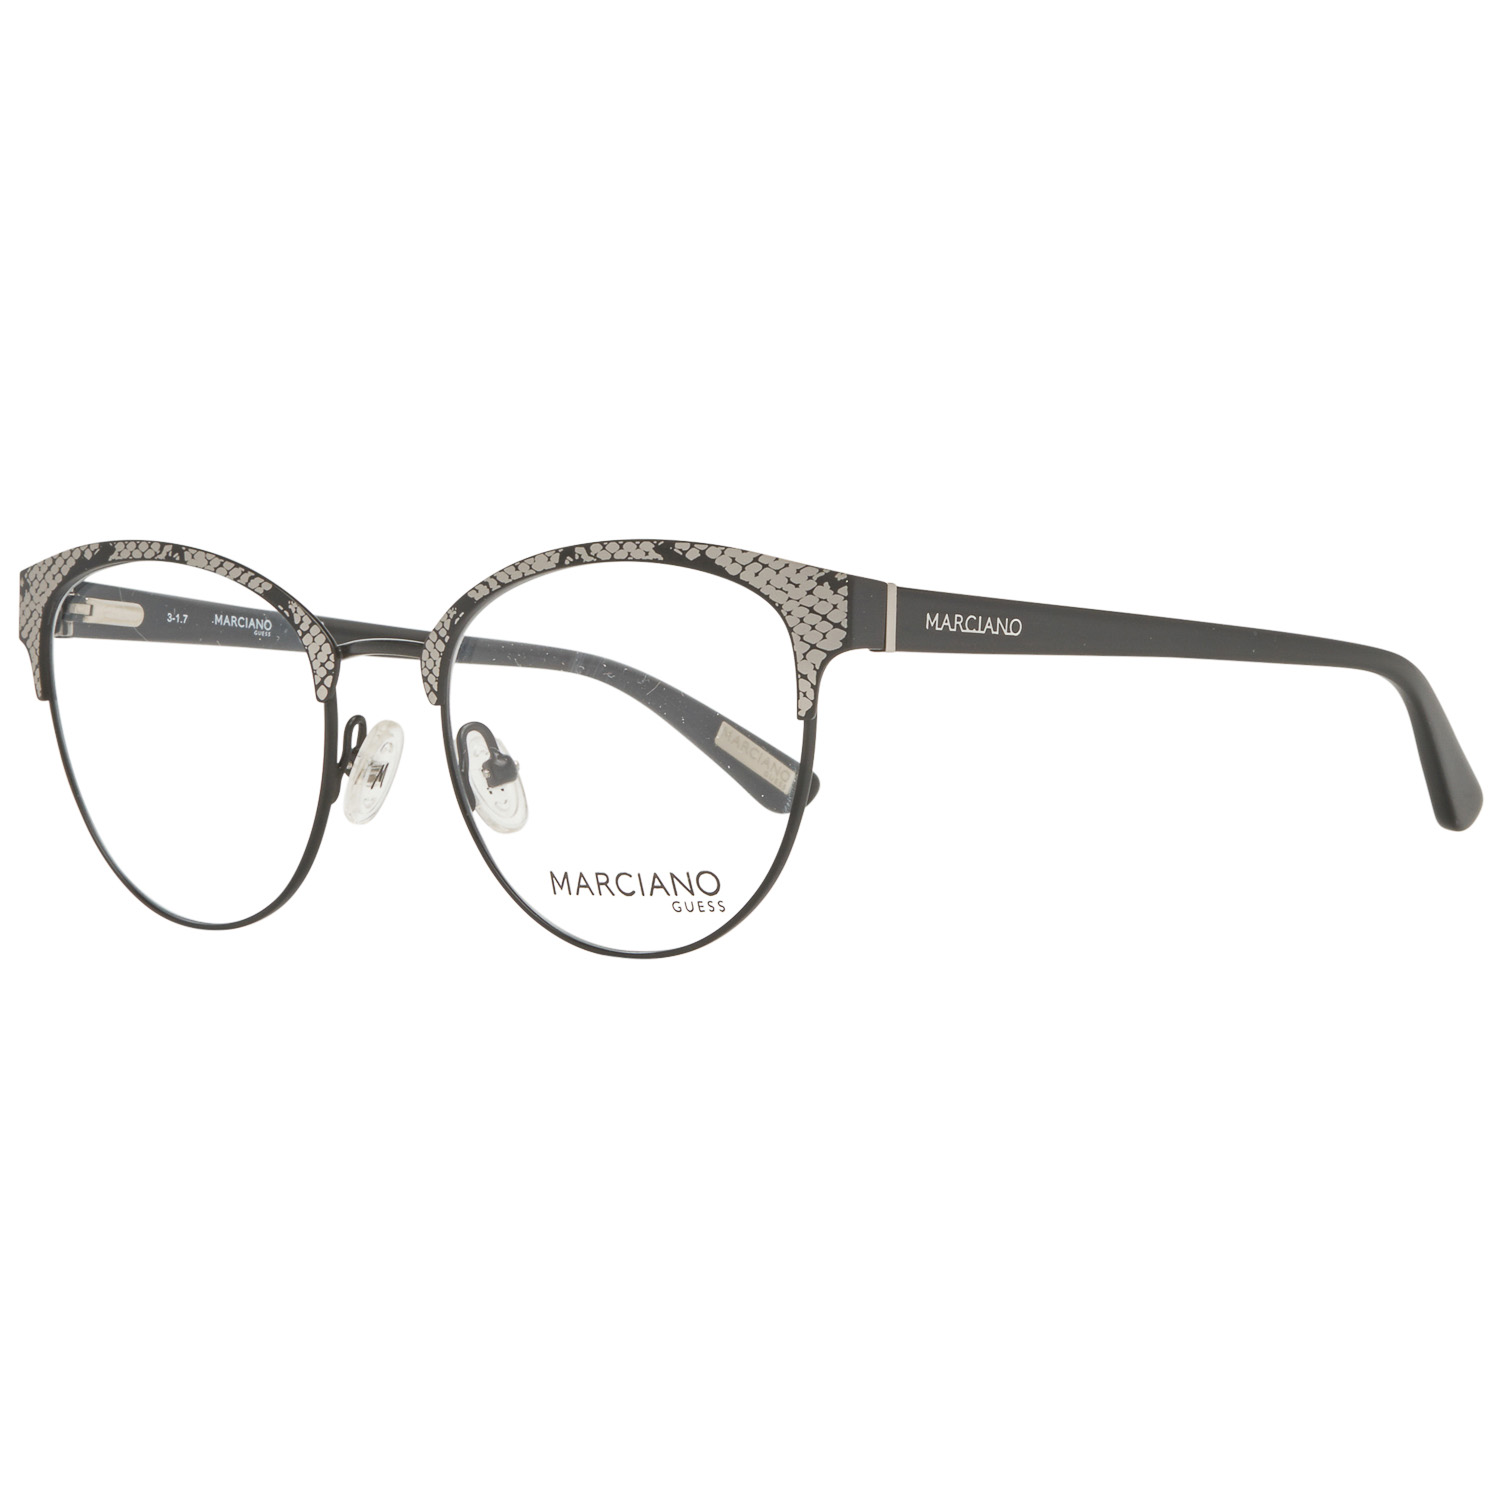 Guess by Marciano Optical Frame GM0317 002 50 Black